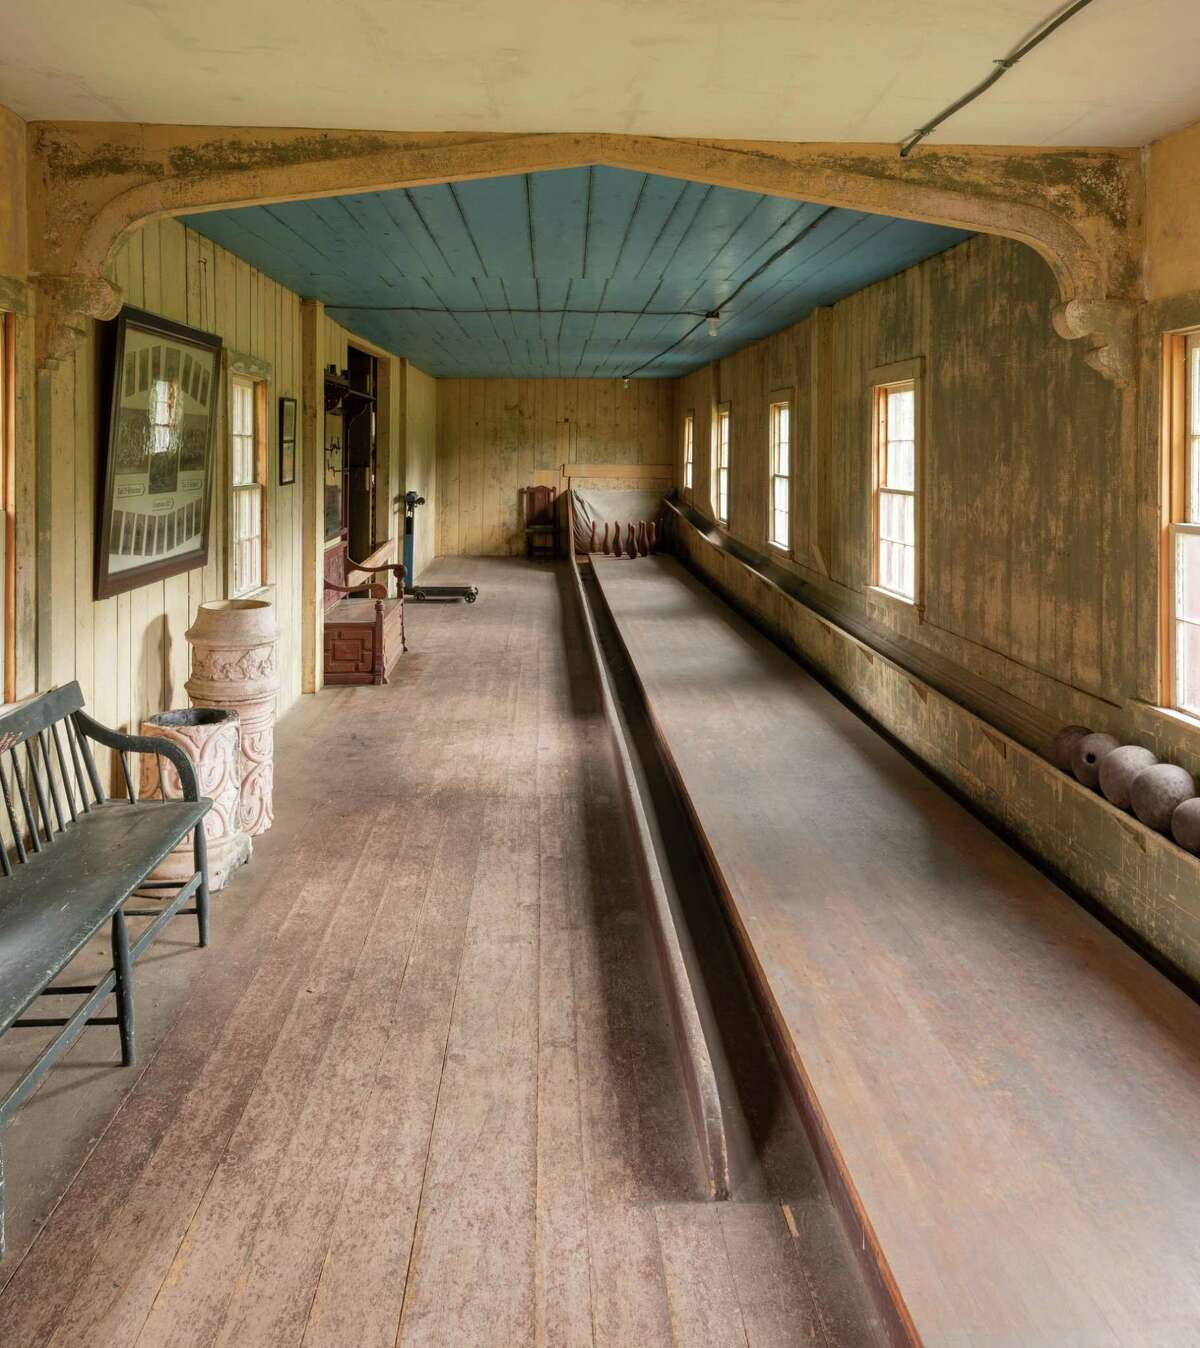 The bowling alley at Roseland Cottage in Woodstock, Conn. is the oldest surviving bowling alley in the United States.